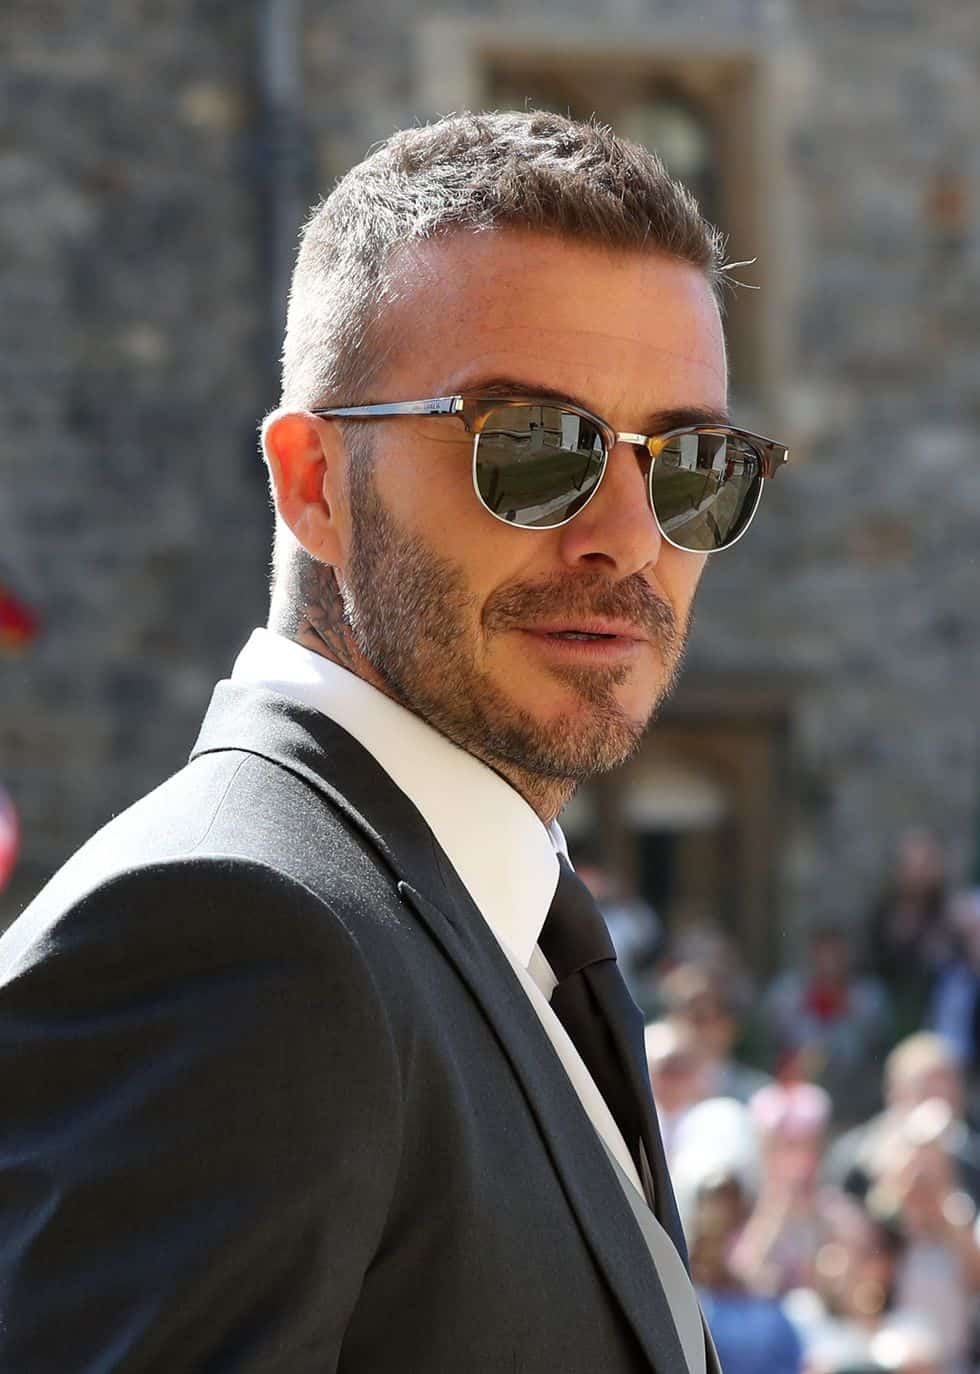 David Beckham Walked Into The Royal Wedding With A Classic Hairstyle